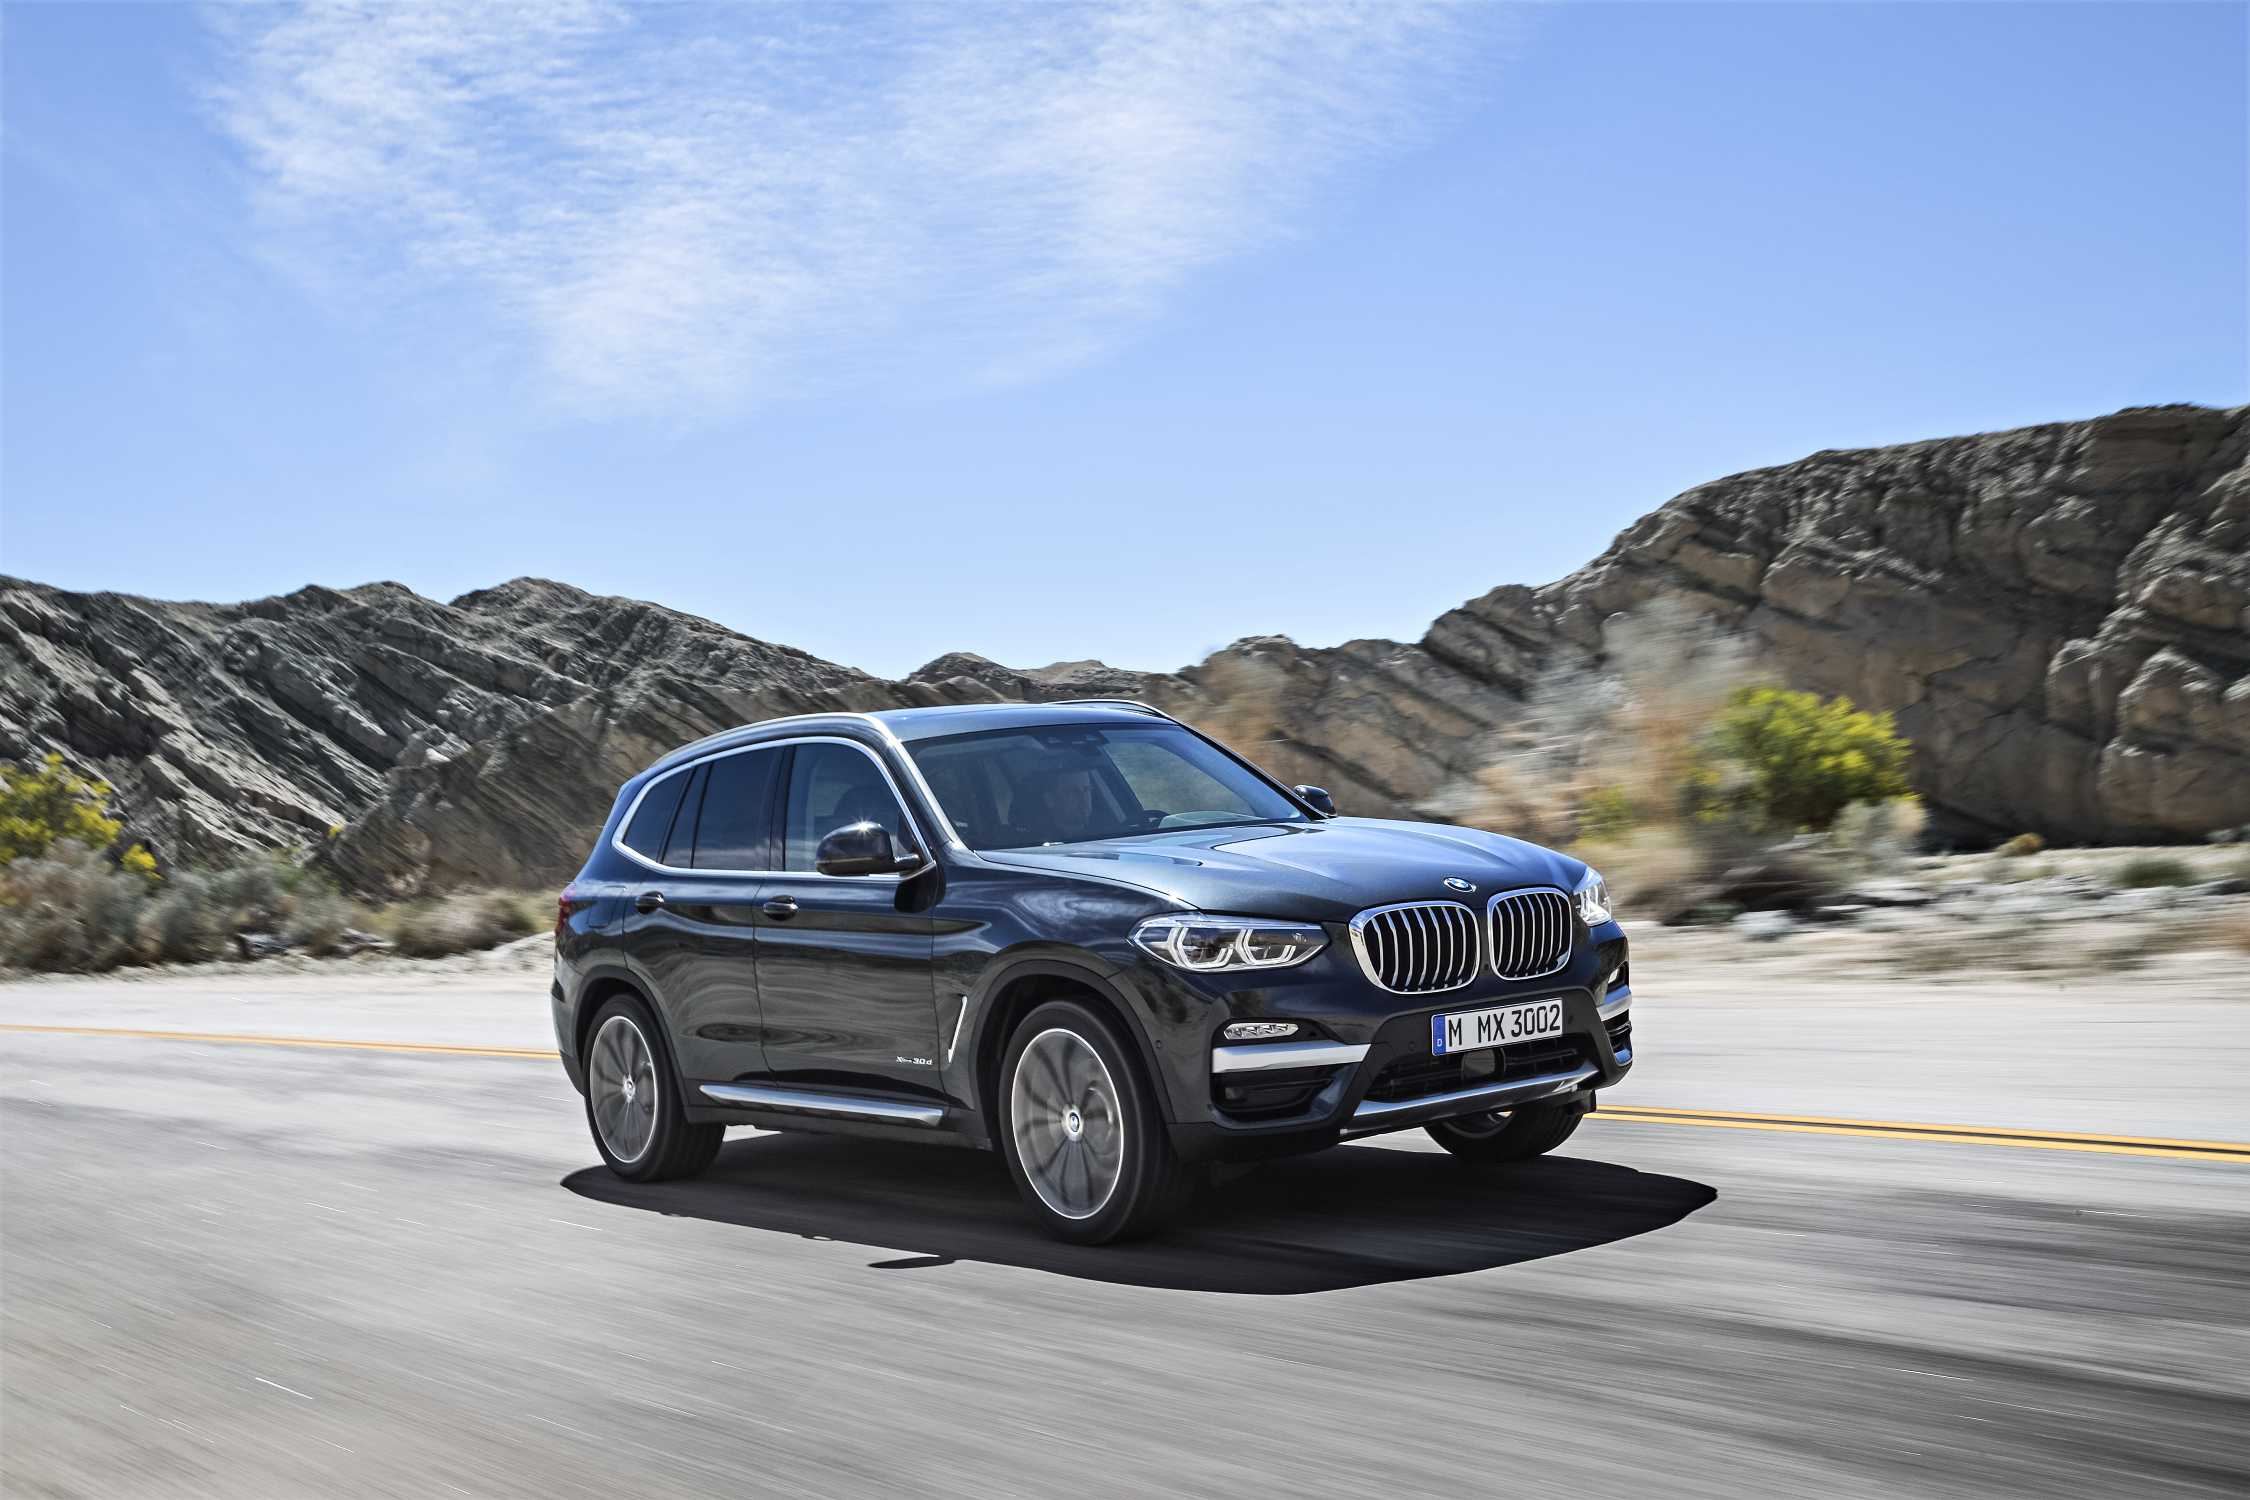 The New BMW X3 XDrive30d With XLine (Exterior Color: Sophisto Grey  Metallic, Upholstery: Leather Vernasca Mocca) (06/2017).